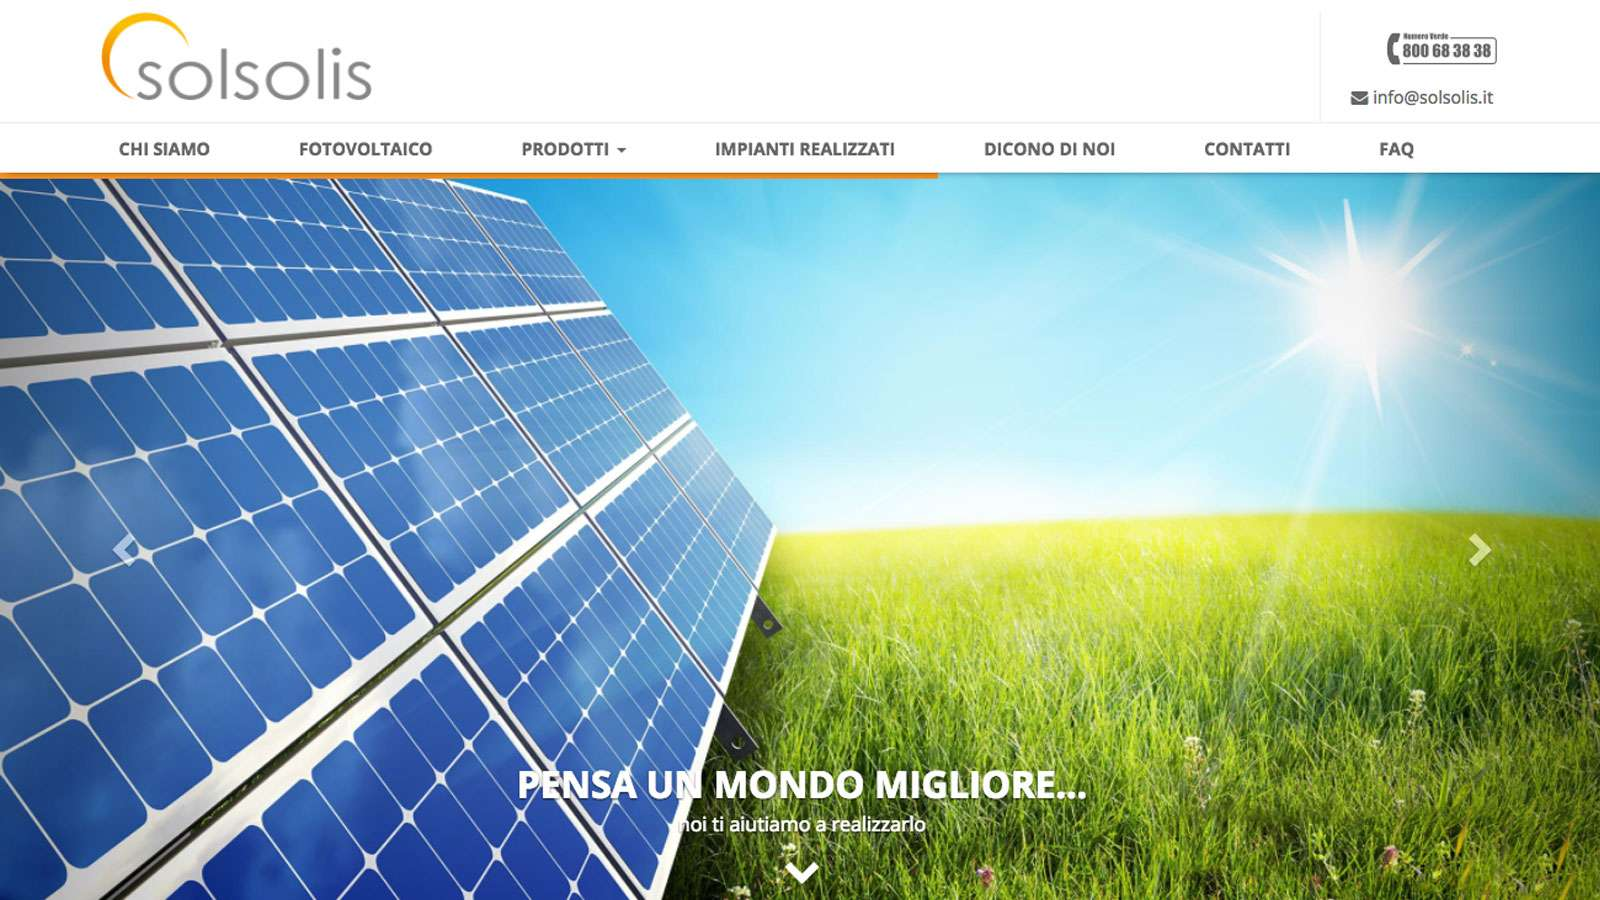 Solsolis Desktop Website